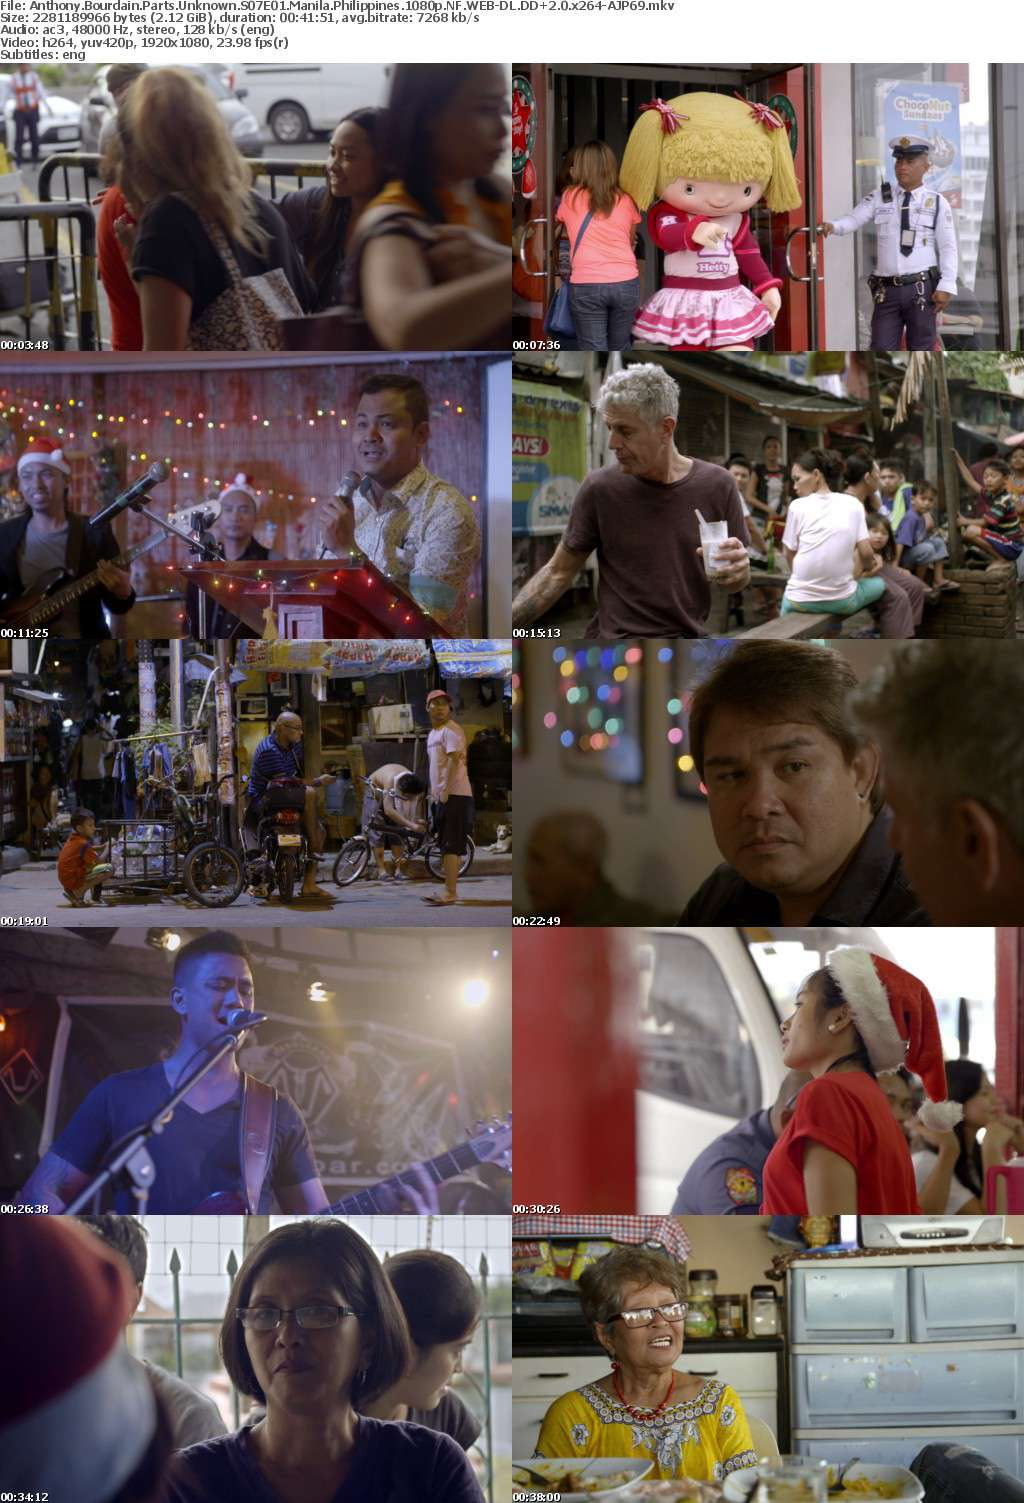 Anthony Bourdain Parts Unknown S07 1080p NF WEB-DL DDP2 0 x264-AJP69